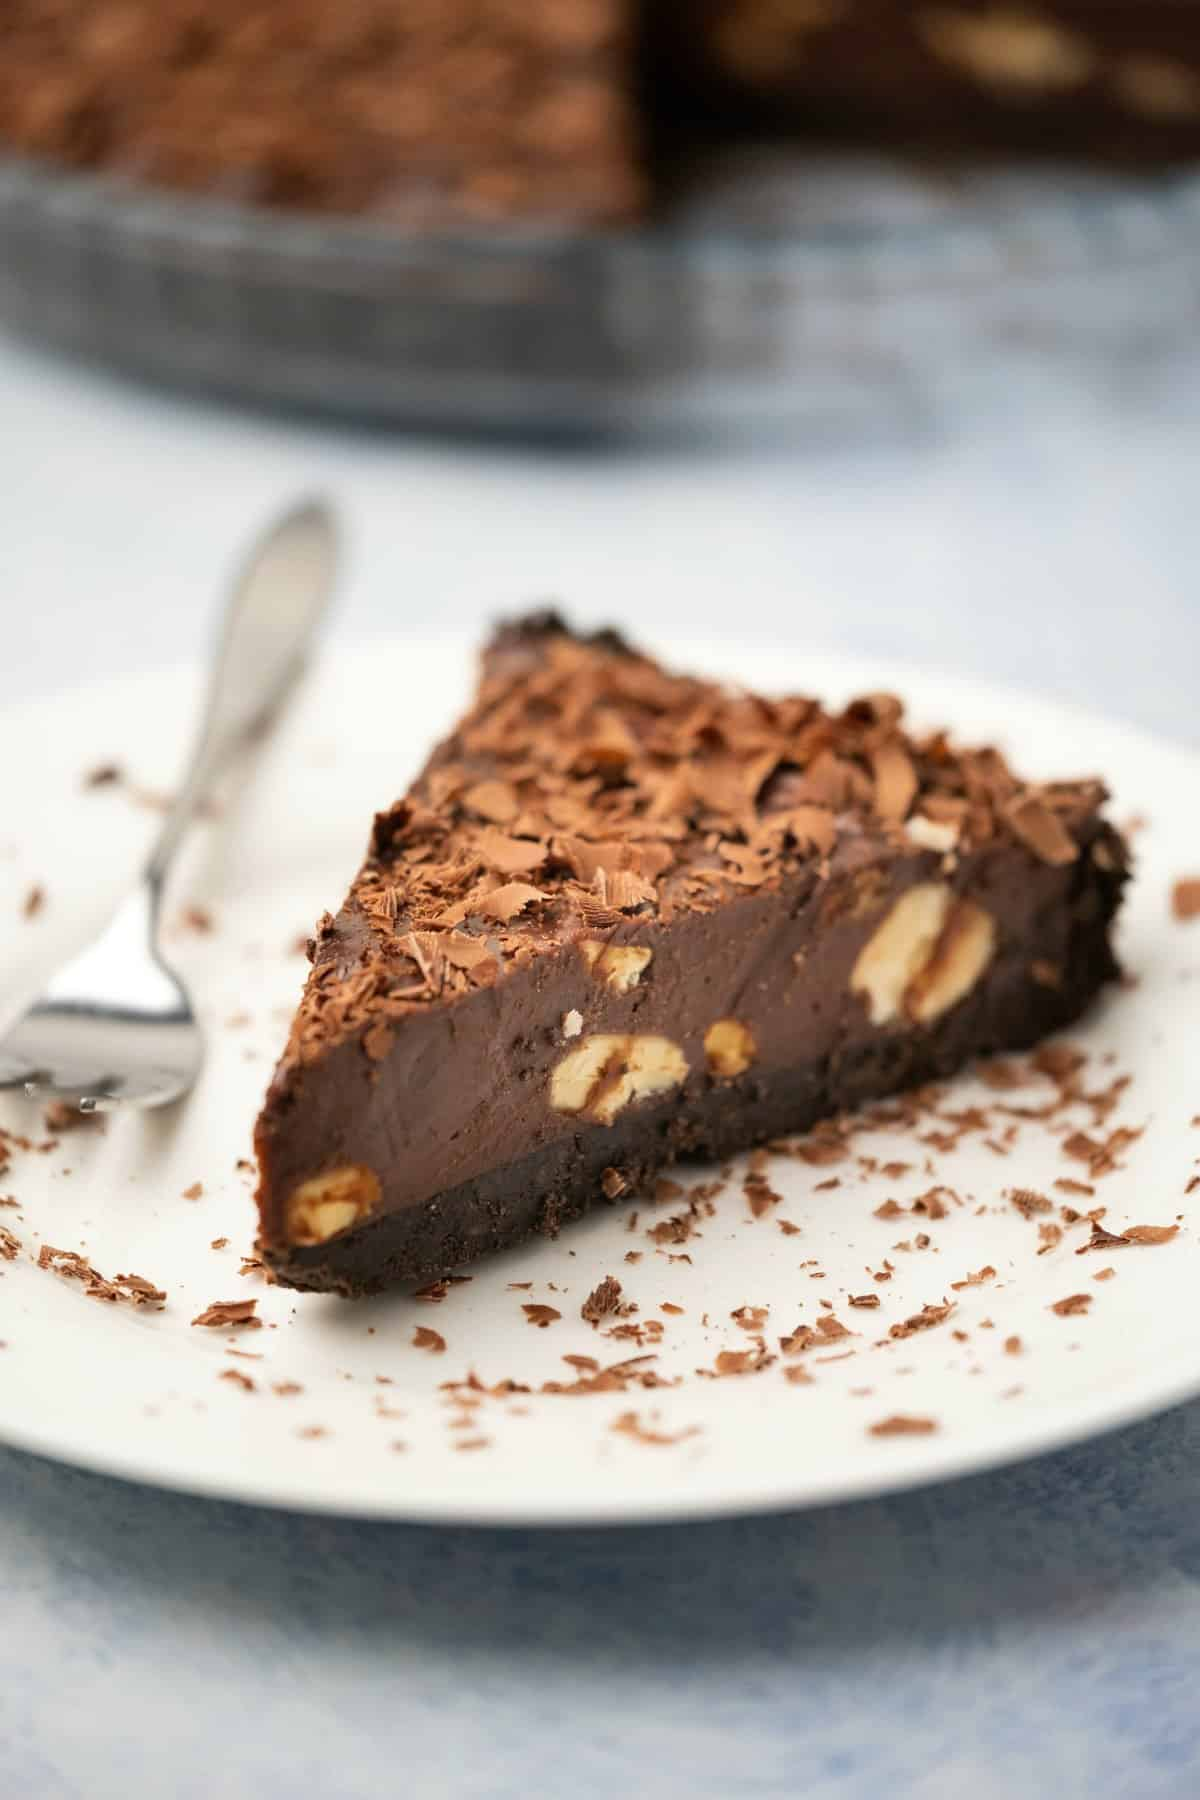 Slice of chocolate tart on a white plate with a cake fork.